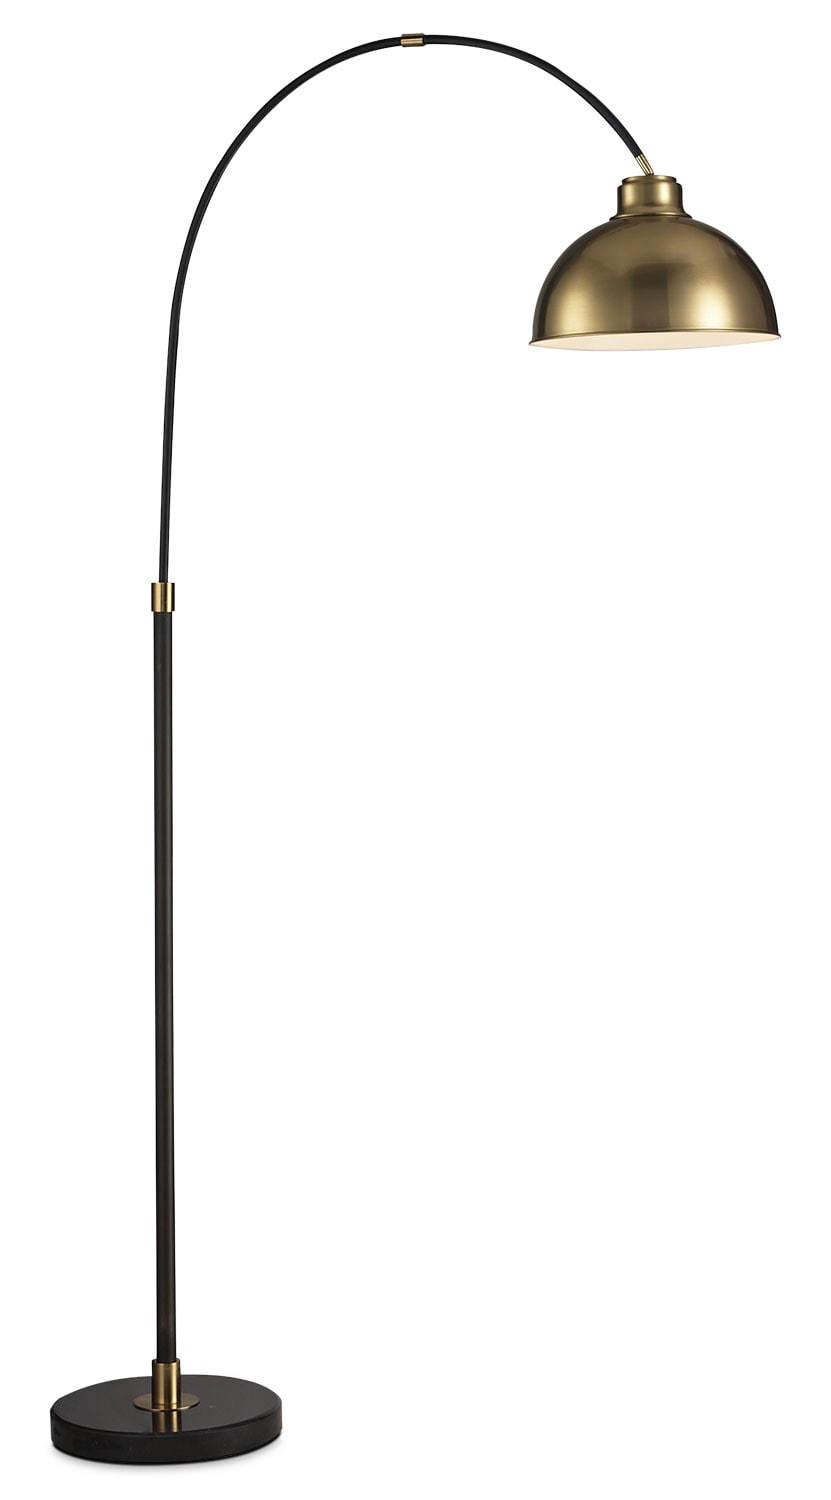 Black arc floor lamp with gold metal shade united for Arc floor lamp with copper shade